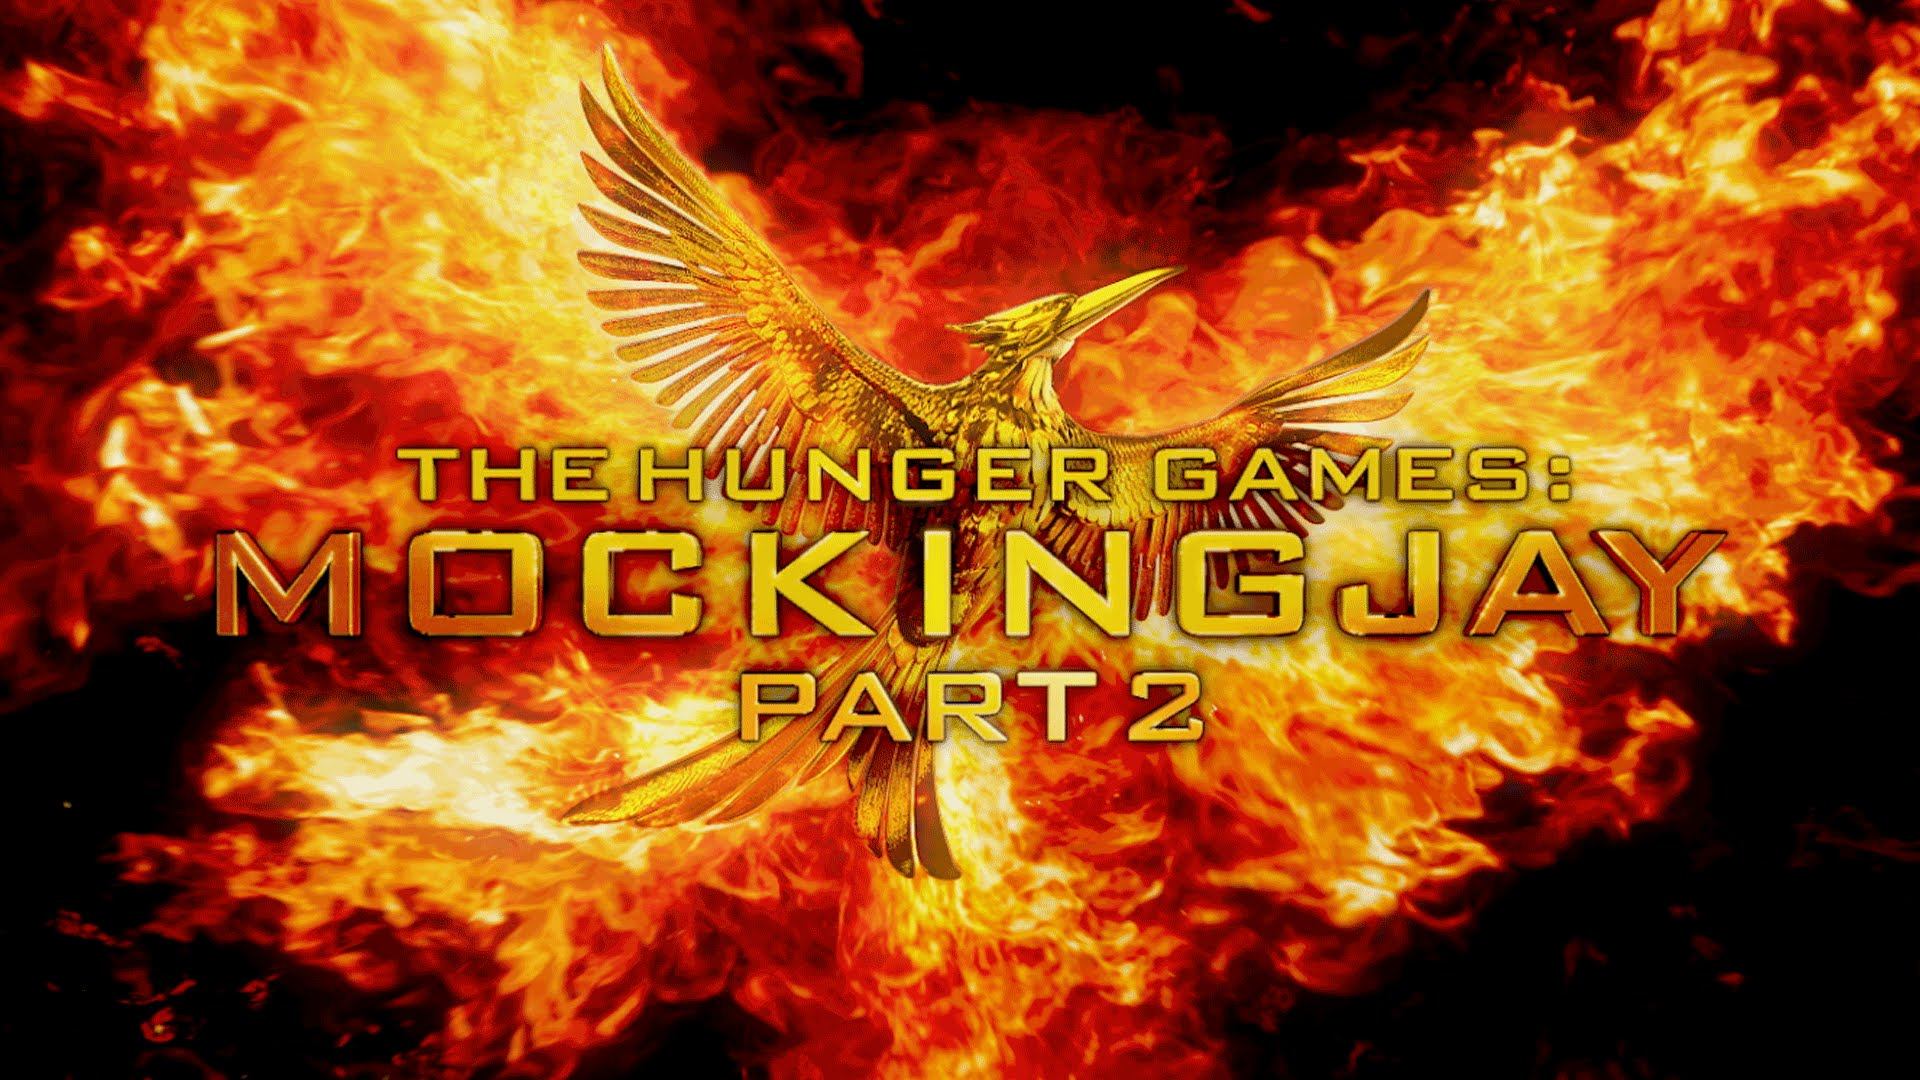 The Hunger Games: Mockingjay - Part 2 Desktop wallpapers